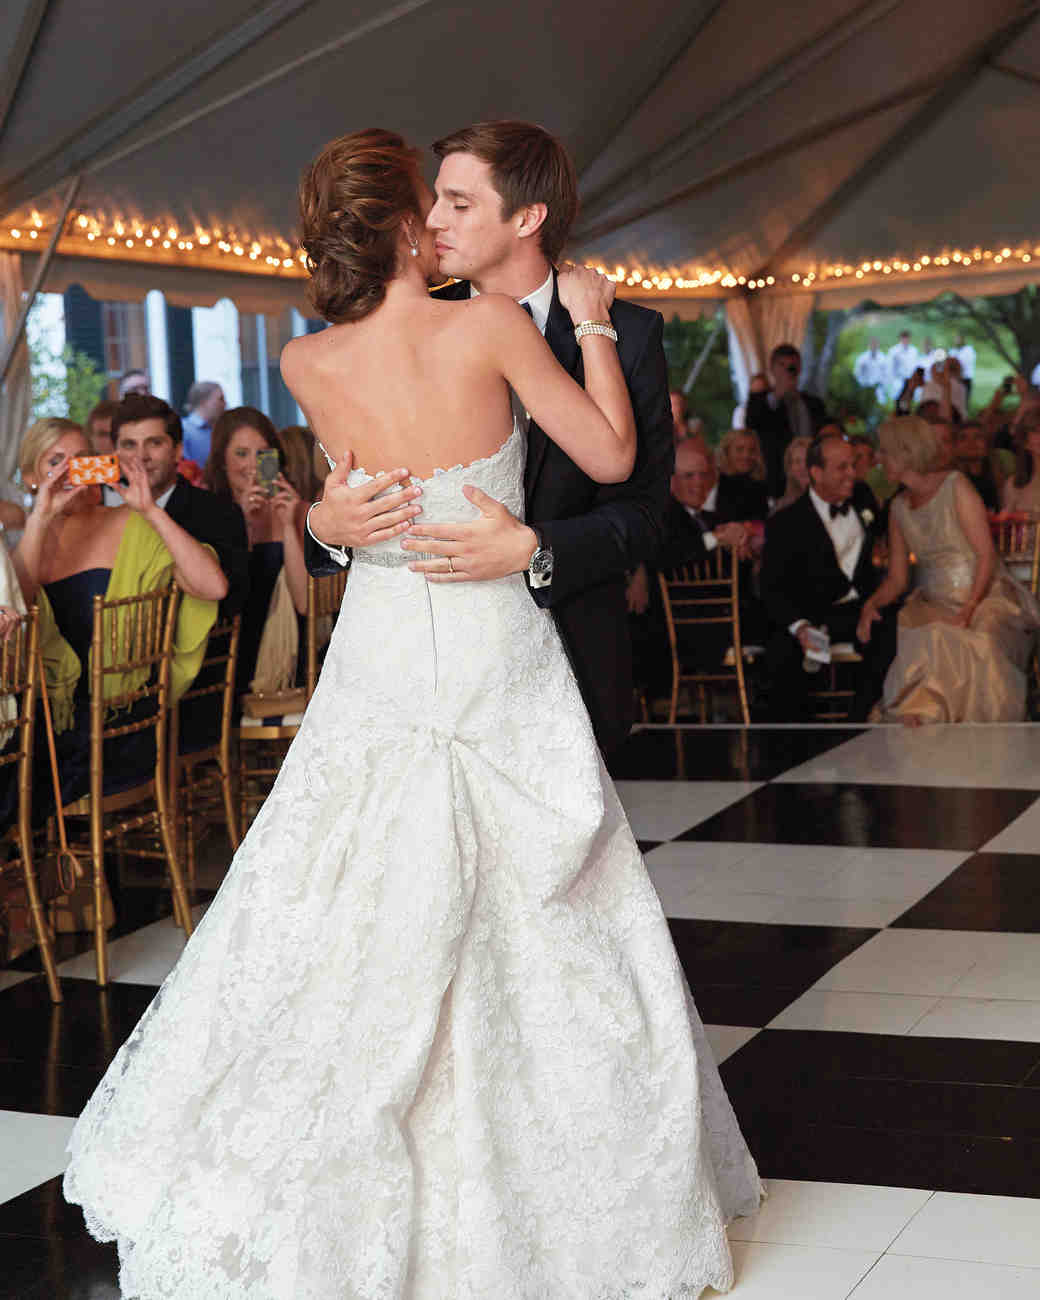 bride-groom-first-dance-msw-05-24-13-1352-md110142.jpg